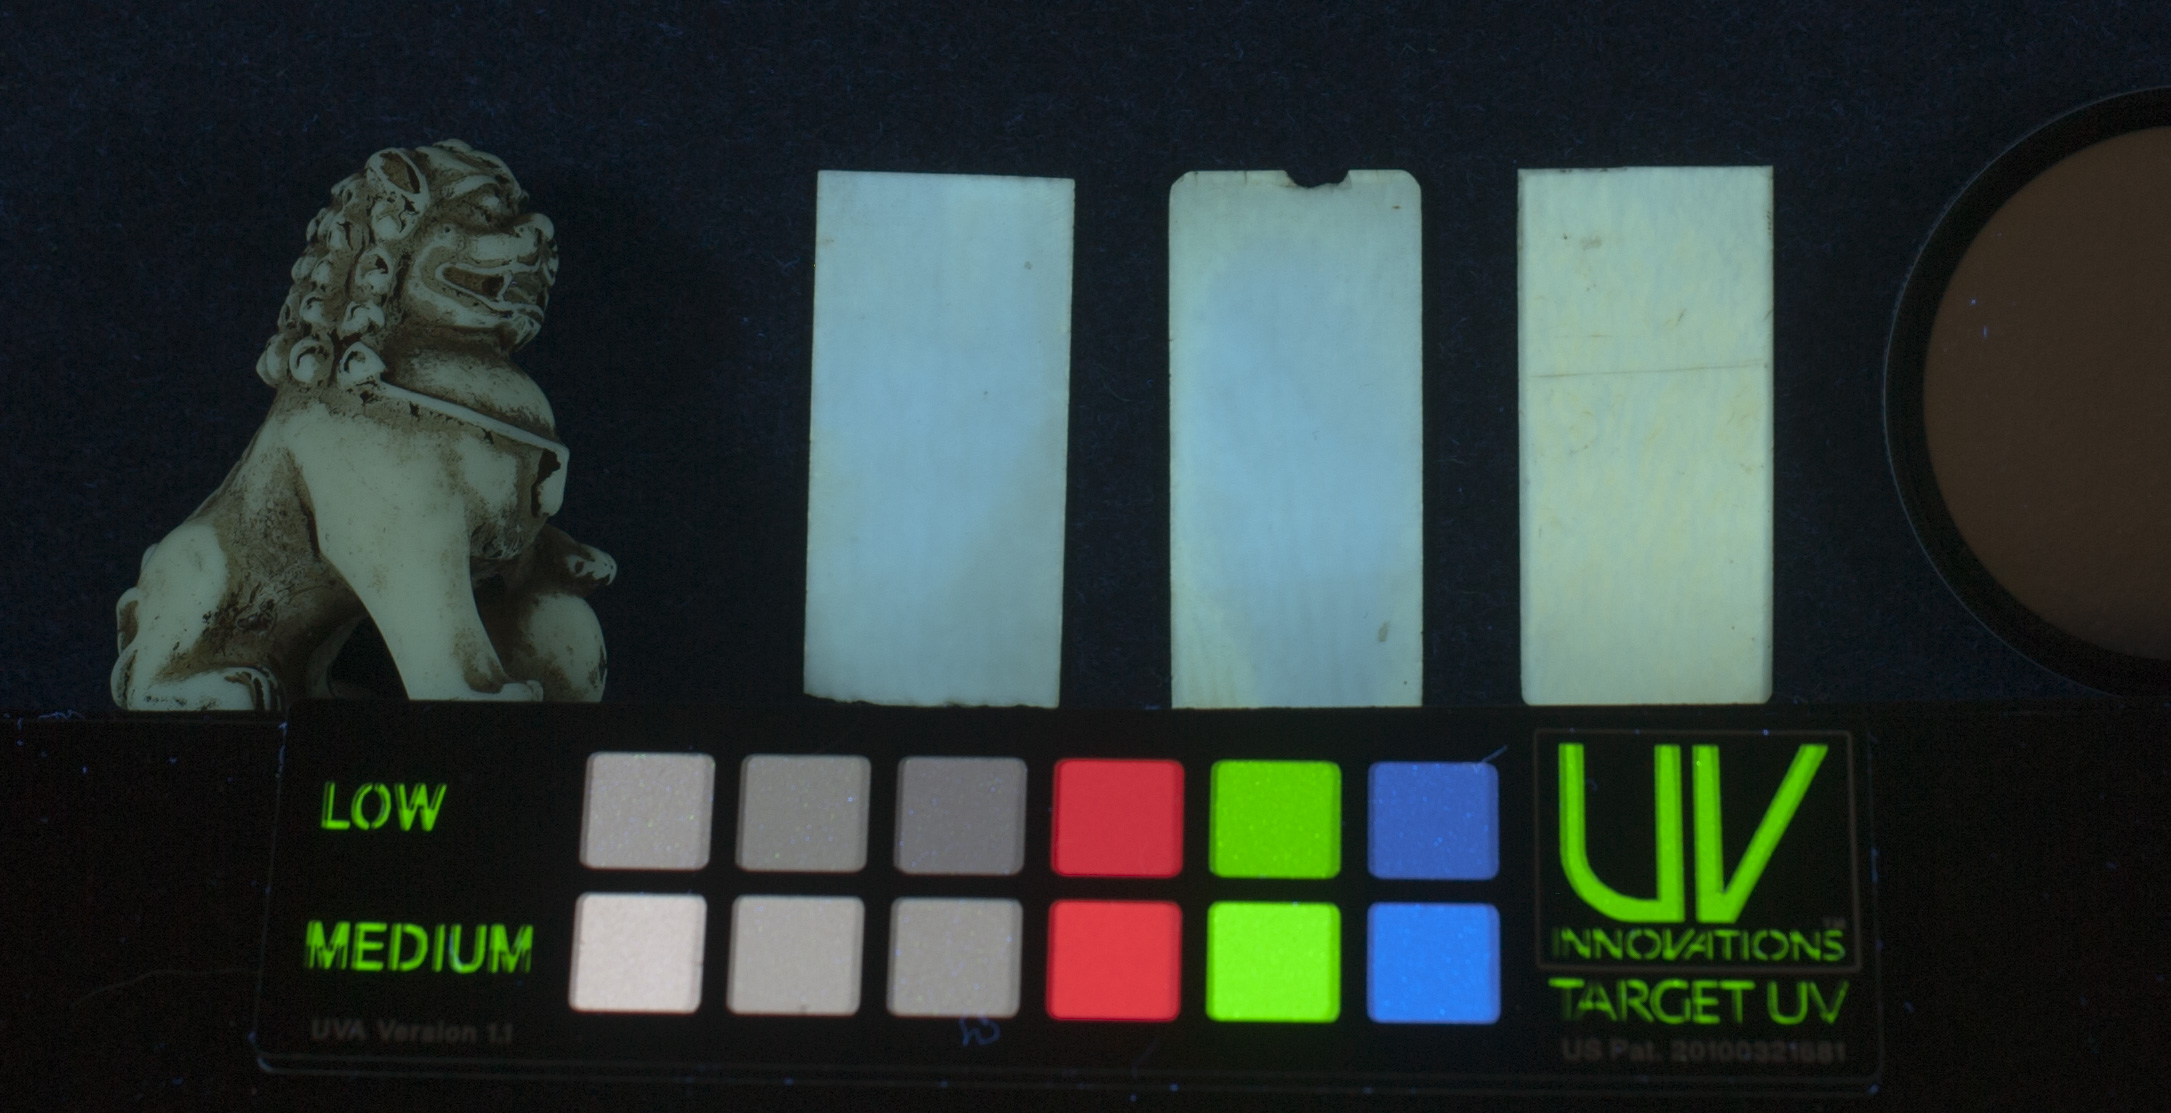 UV-vis, piano keys and netsuke